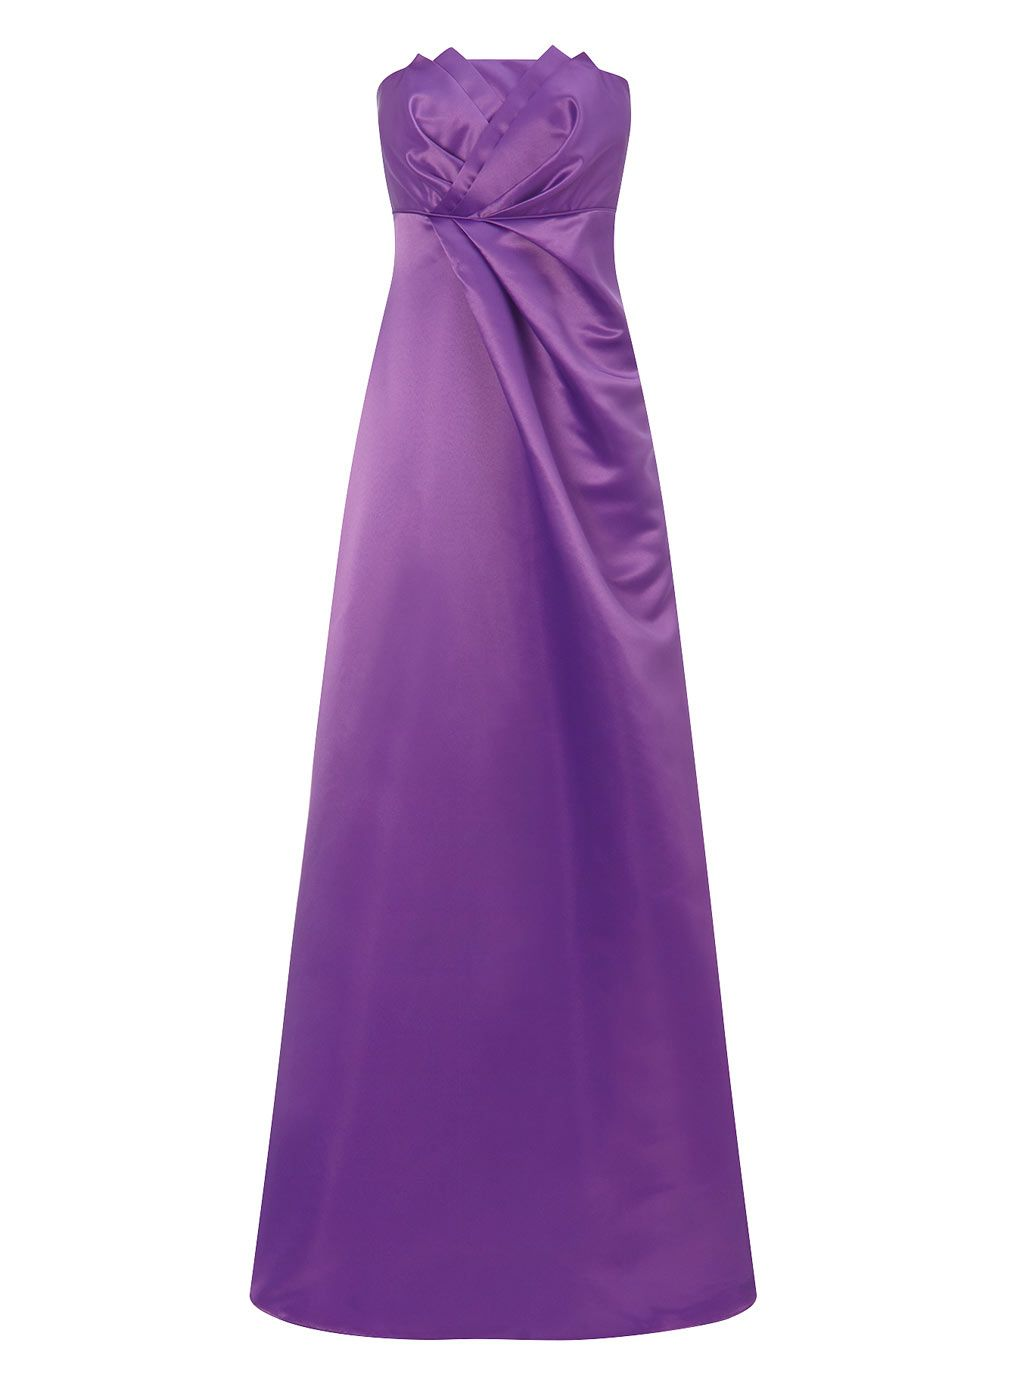 Iris purple long dress httpweddingheartbhs adult shop for bridesmaid dresses at the best shops right here ombrellifo Choice Image